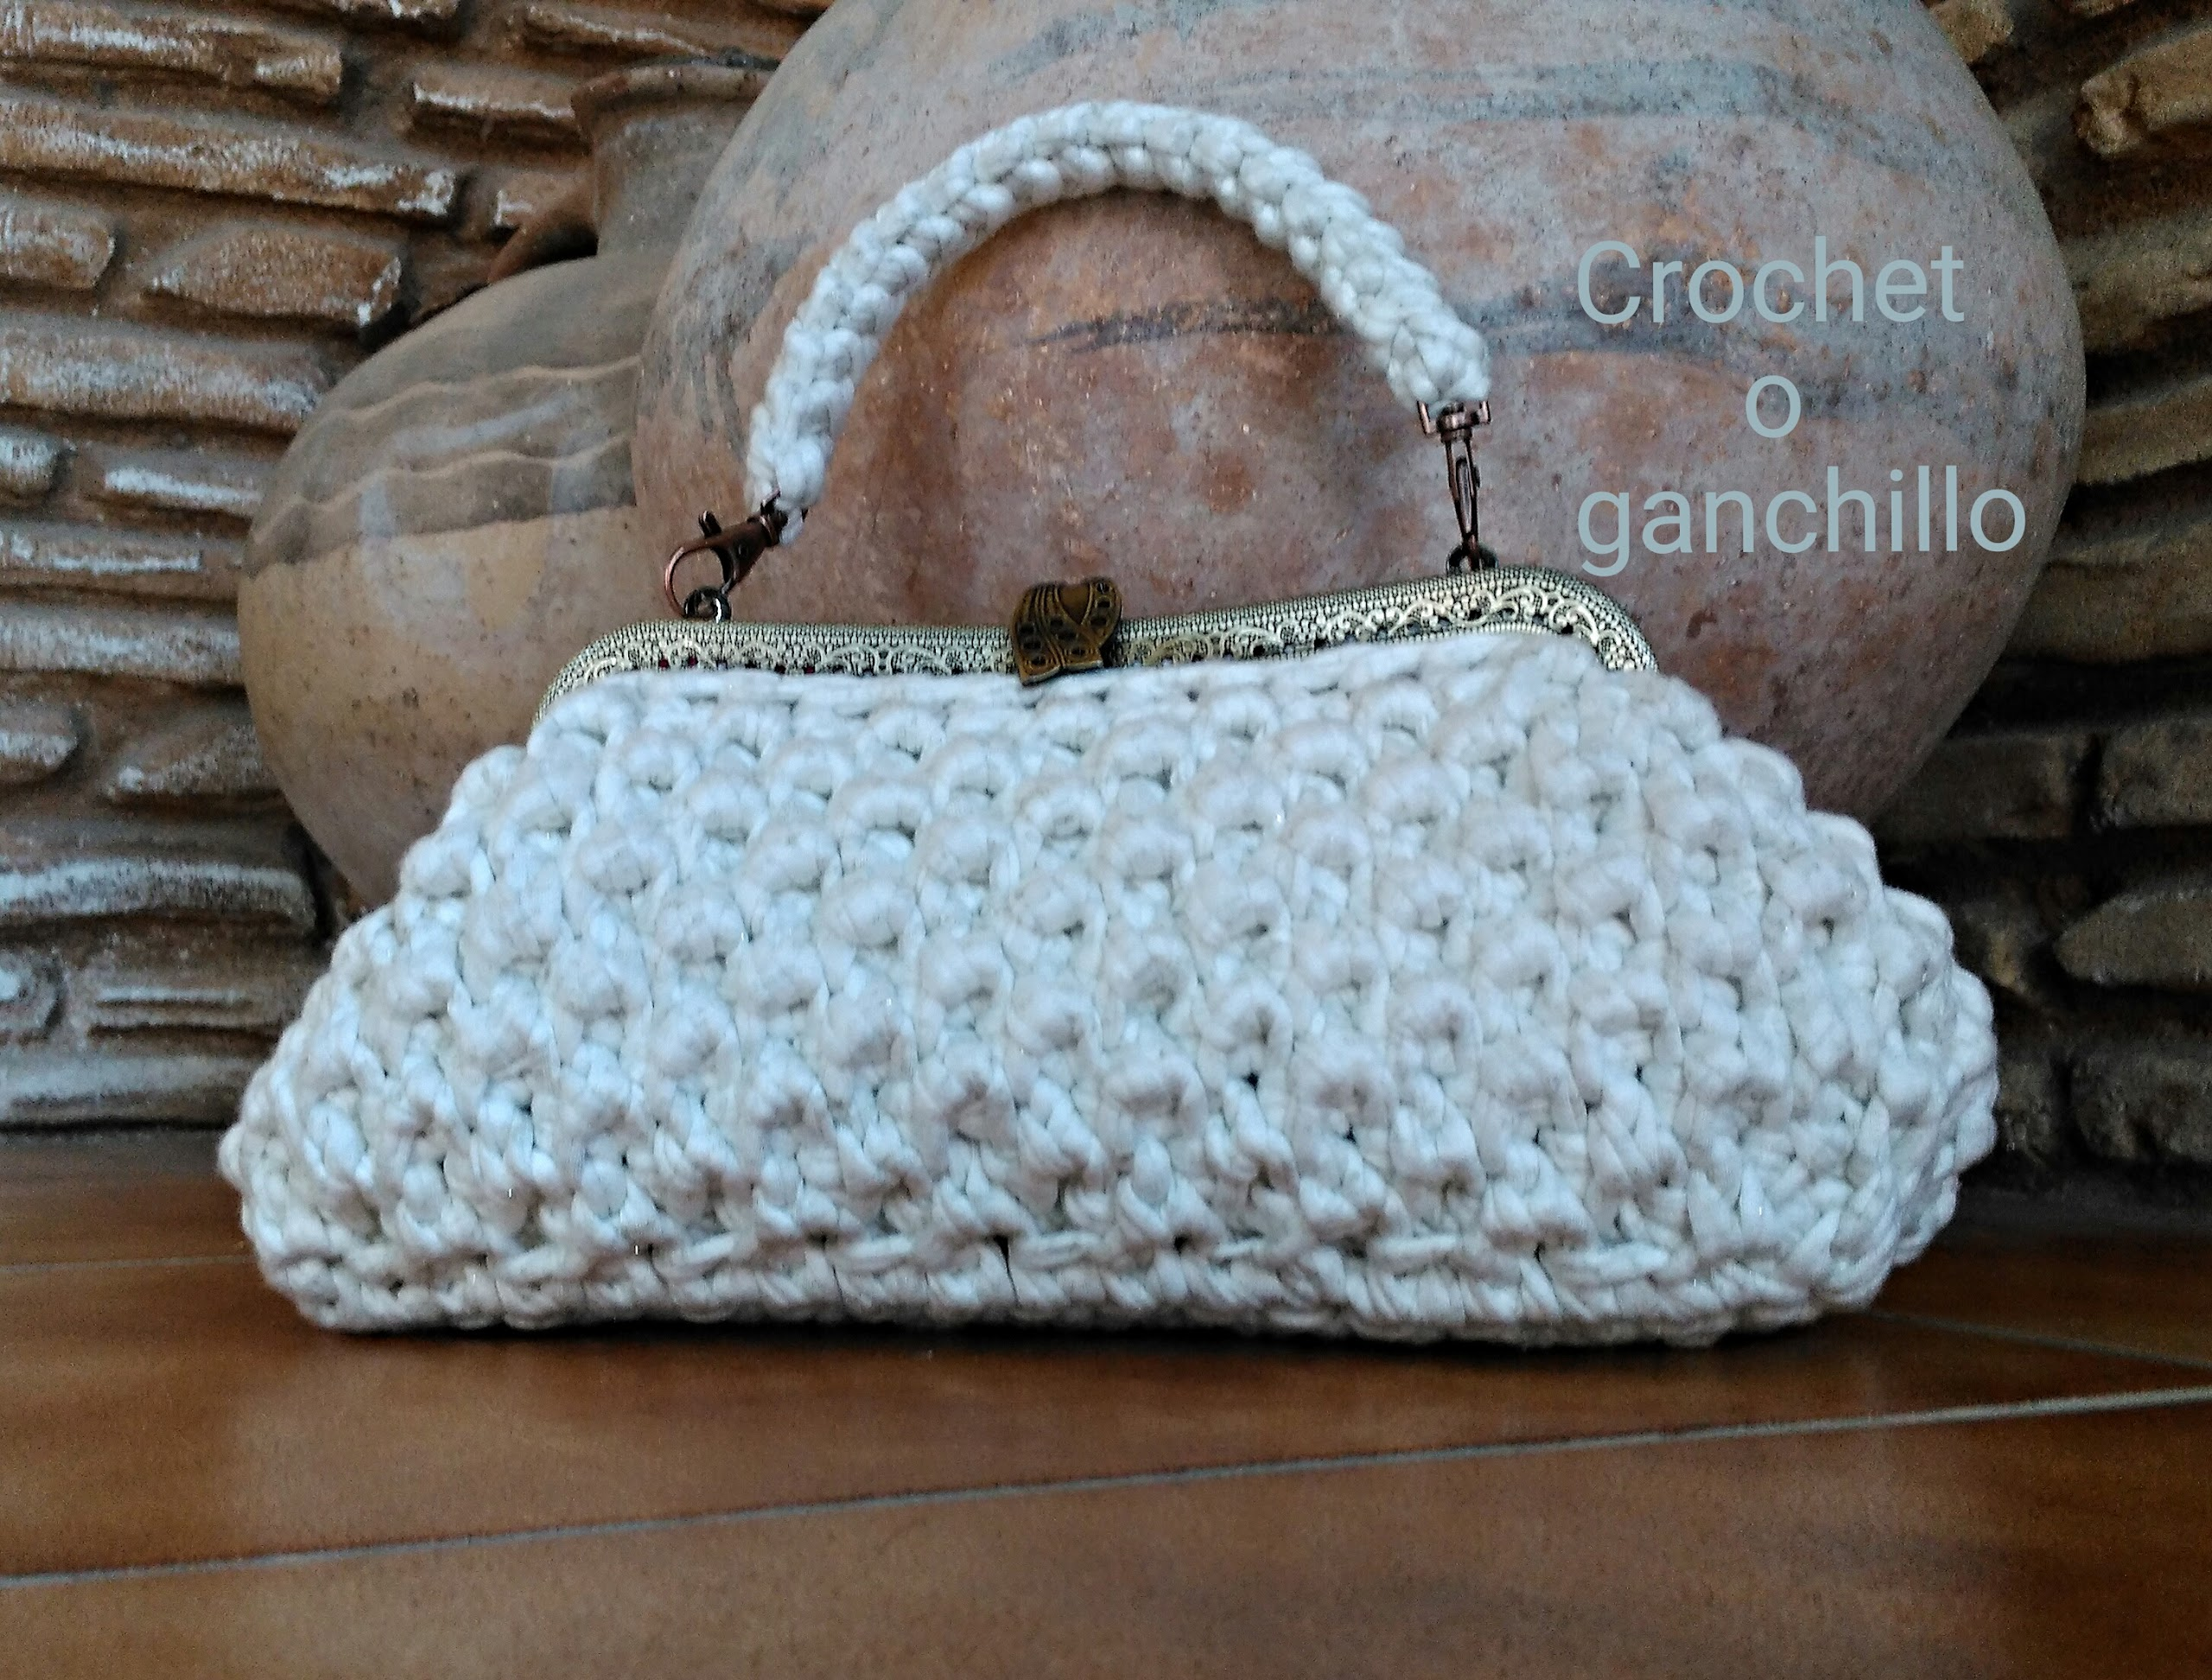 Crochet o ganchillo bolso de trapillo white for Bolsos de crochet de trapillo